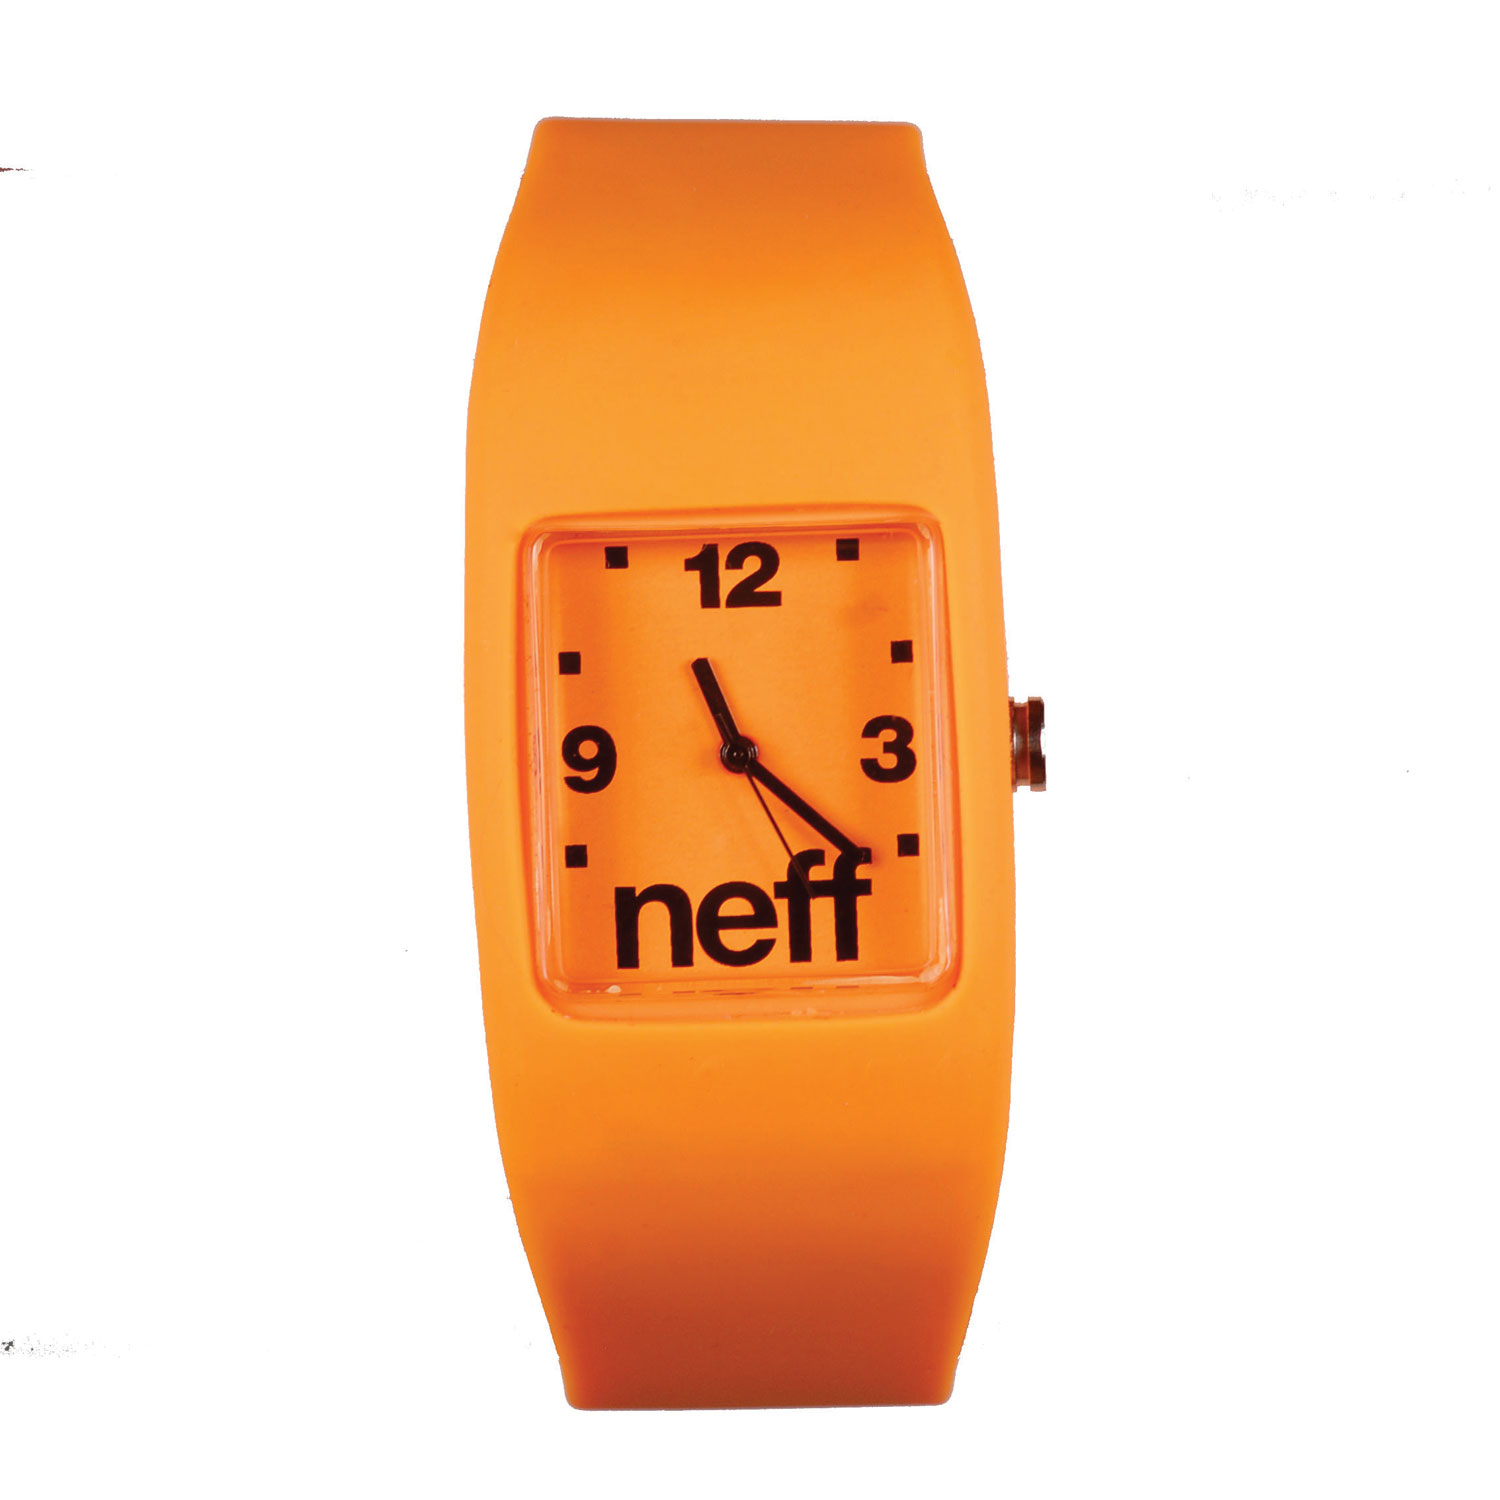 Skateboard The Neff Bandit watch stretches to fit your wrist so you don't have to worry about it coming undone while shredding the hills. It also has an interchangeable face! Feel free to mix and match the Neff Bandit wristband watch with other Bandit watches for a customized look. Key Features of the Neff Bandit Watch: 2cm x 2.5cm display. Interchangeable face. Case made from protective ABS material. Silicon stretch band. Neff logo on display, crown and band. Stainless steel back. 5 ATM water resistant. Imported. - $24.95